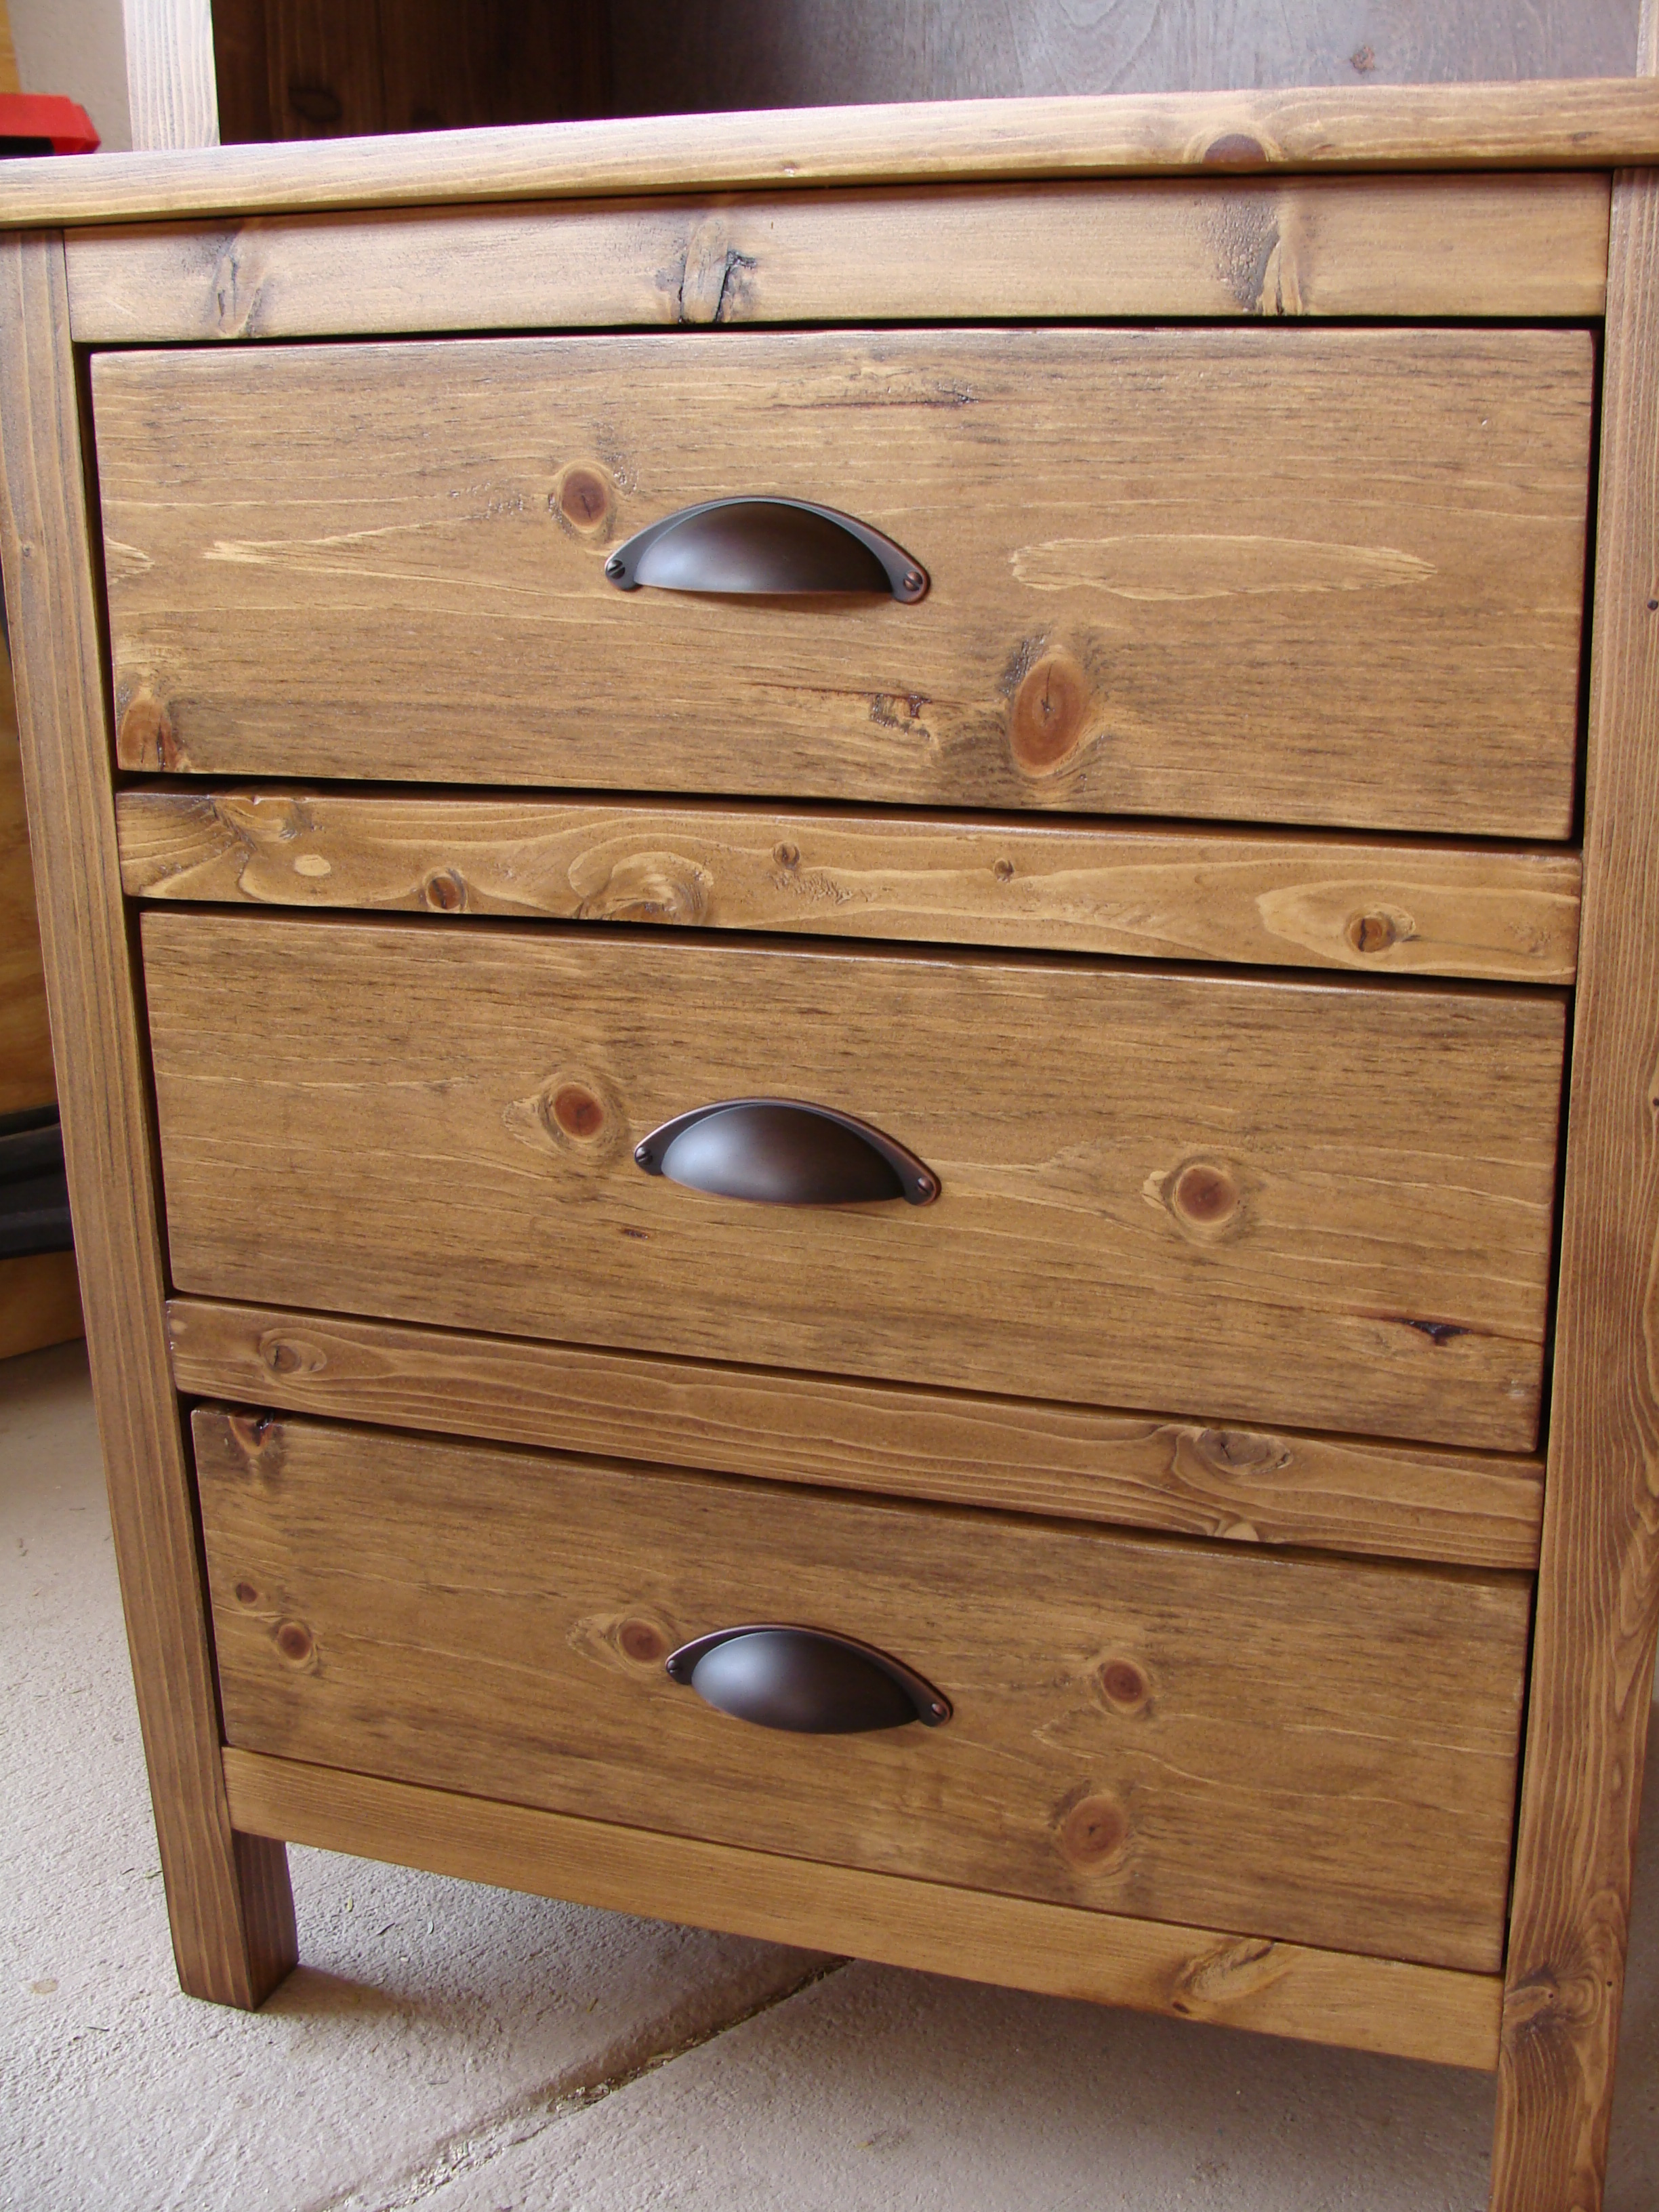 Ana White Modified Reclaimed Wood Look Bedside Table Now